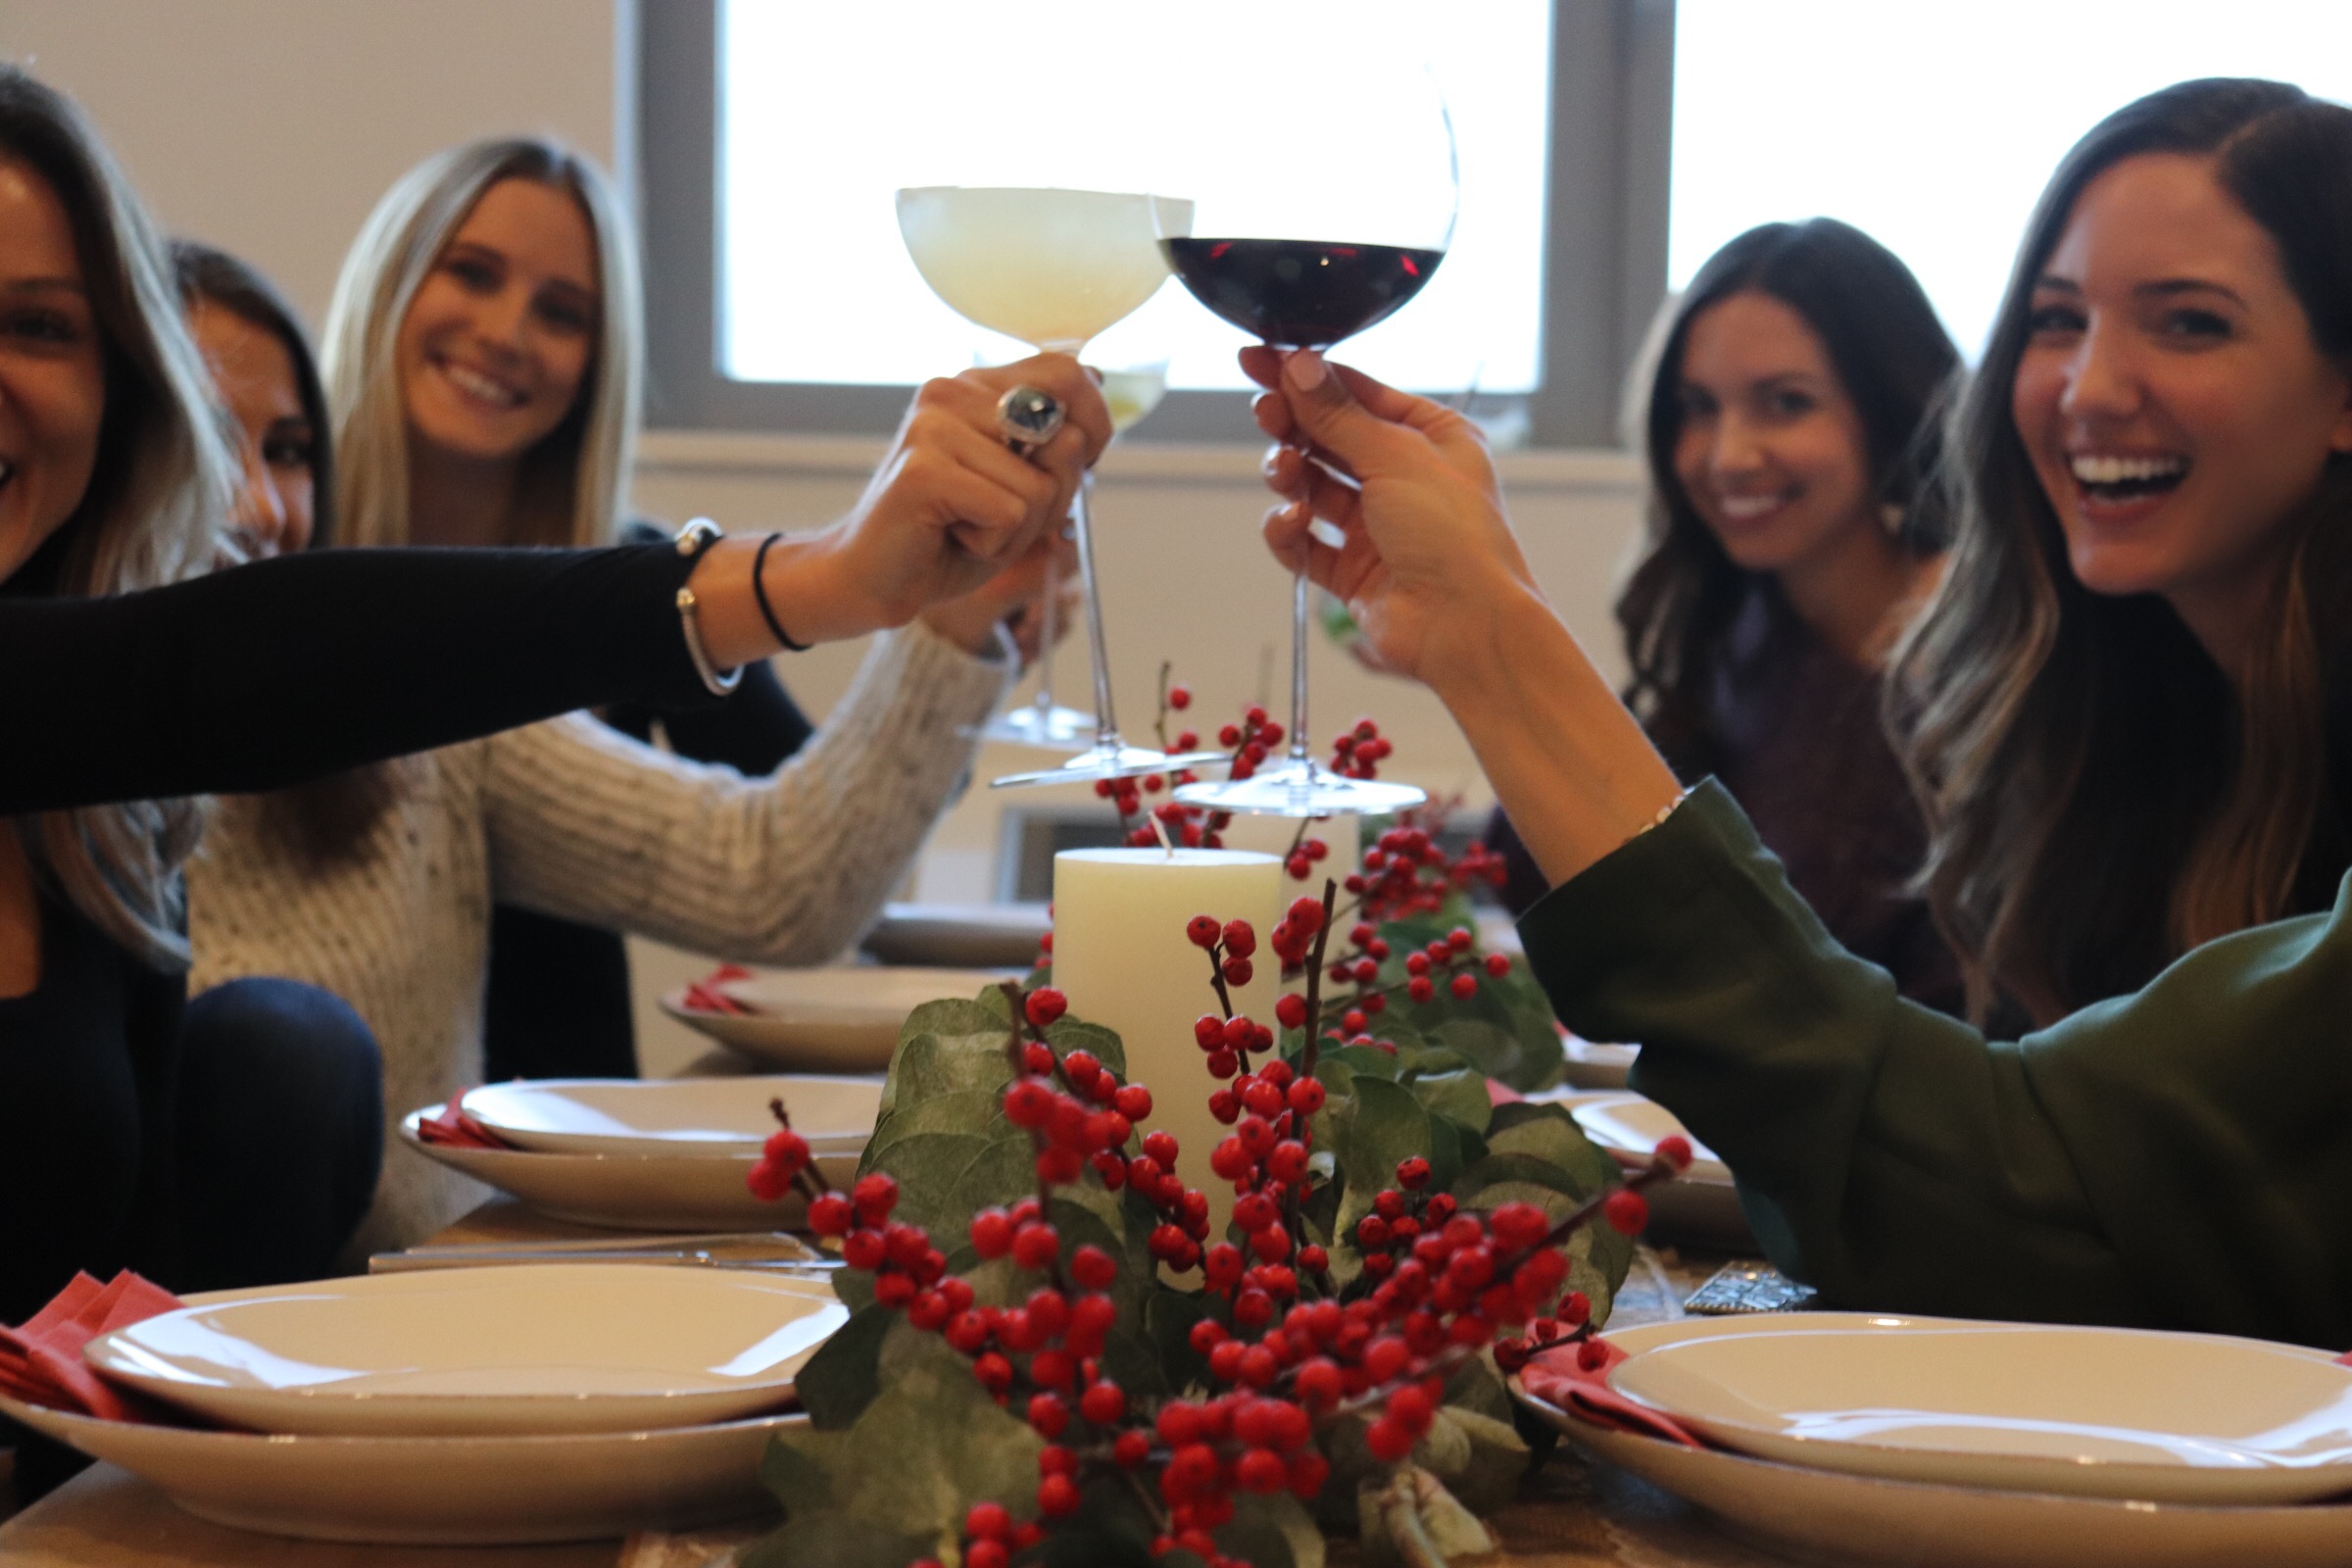 How to Host A Chic Friendsgiving in a NYC Apartment